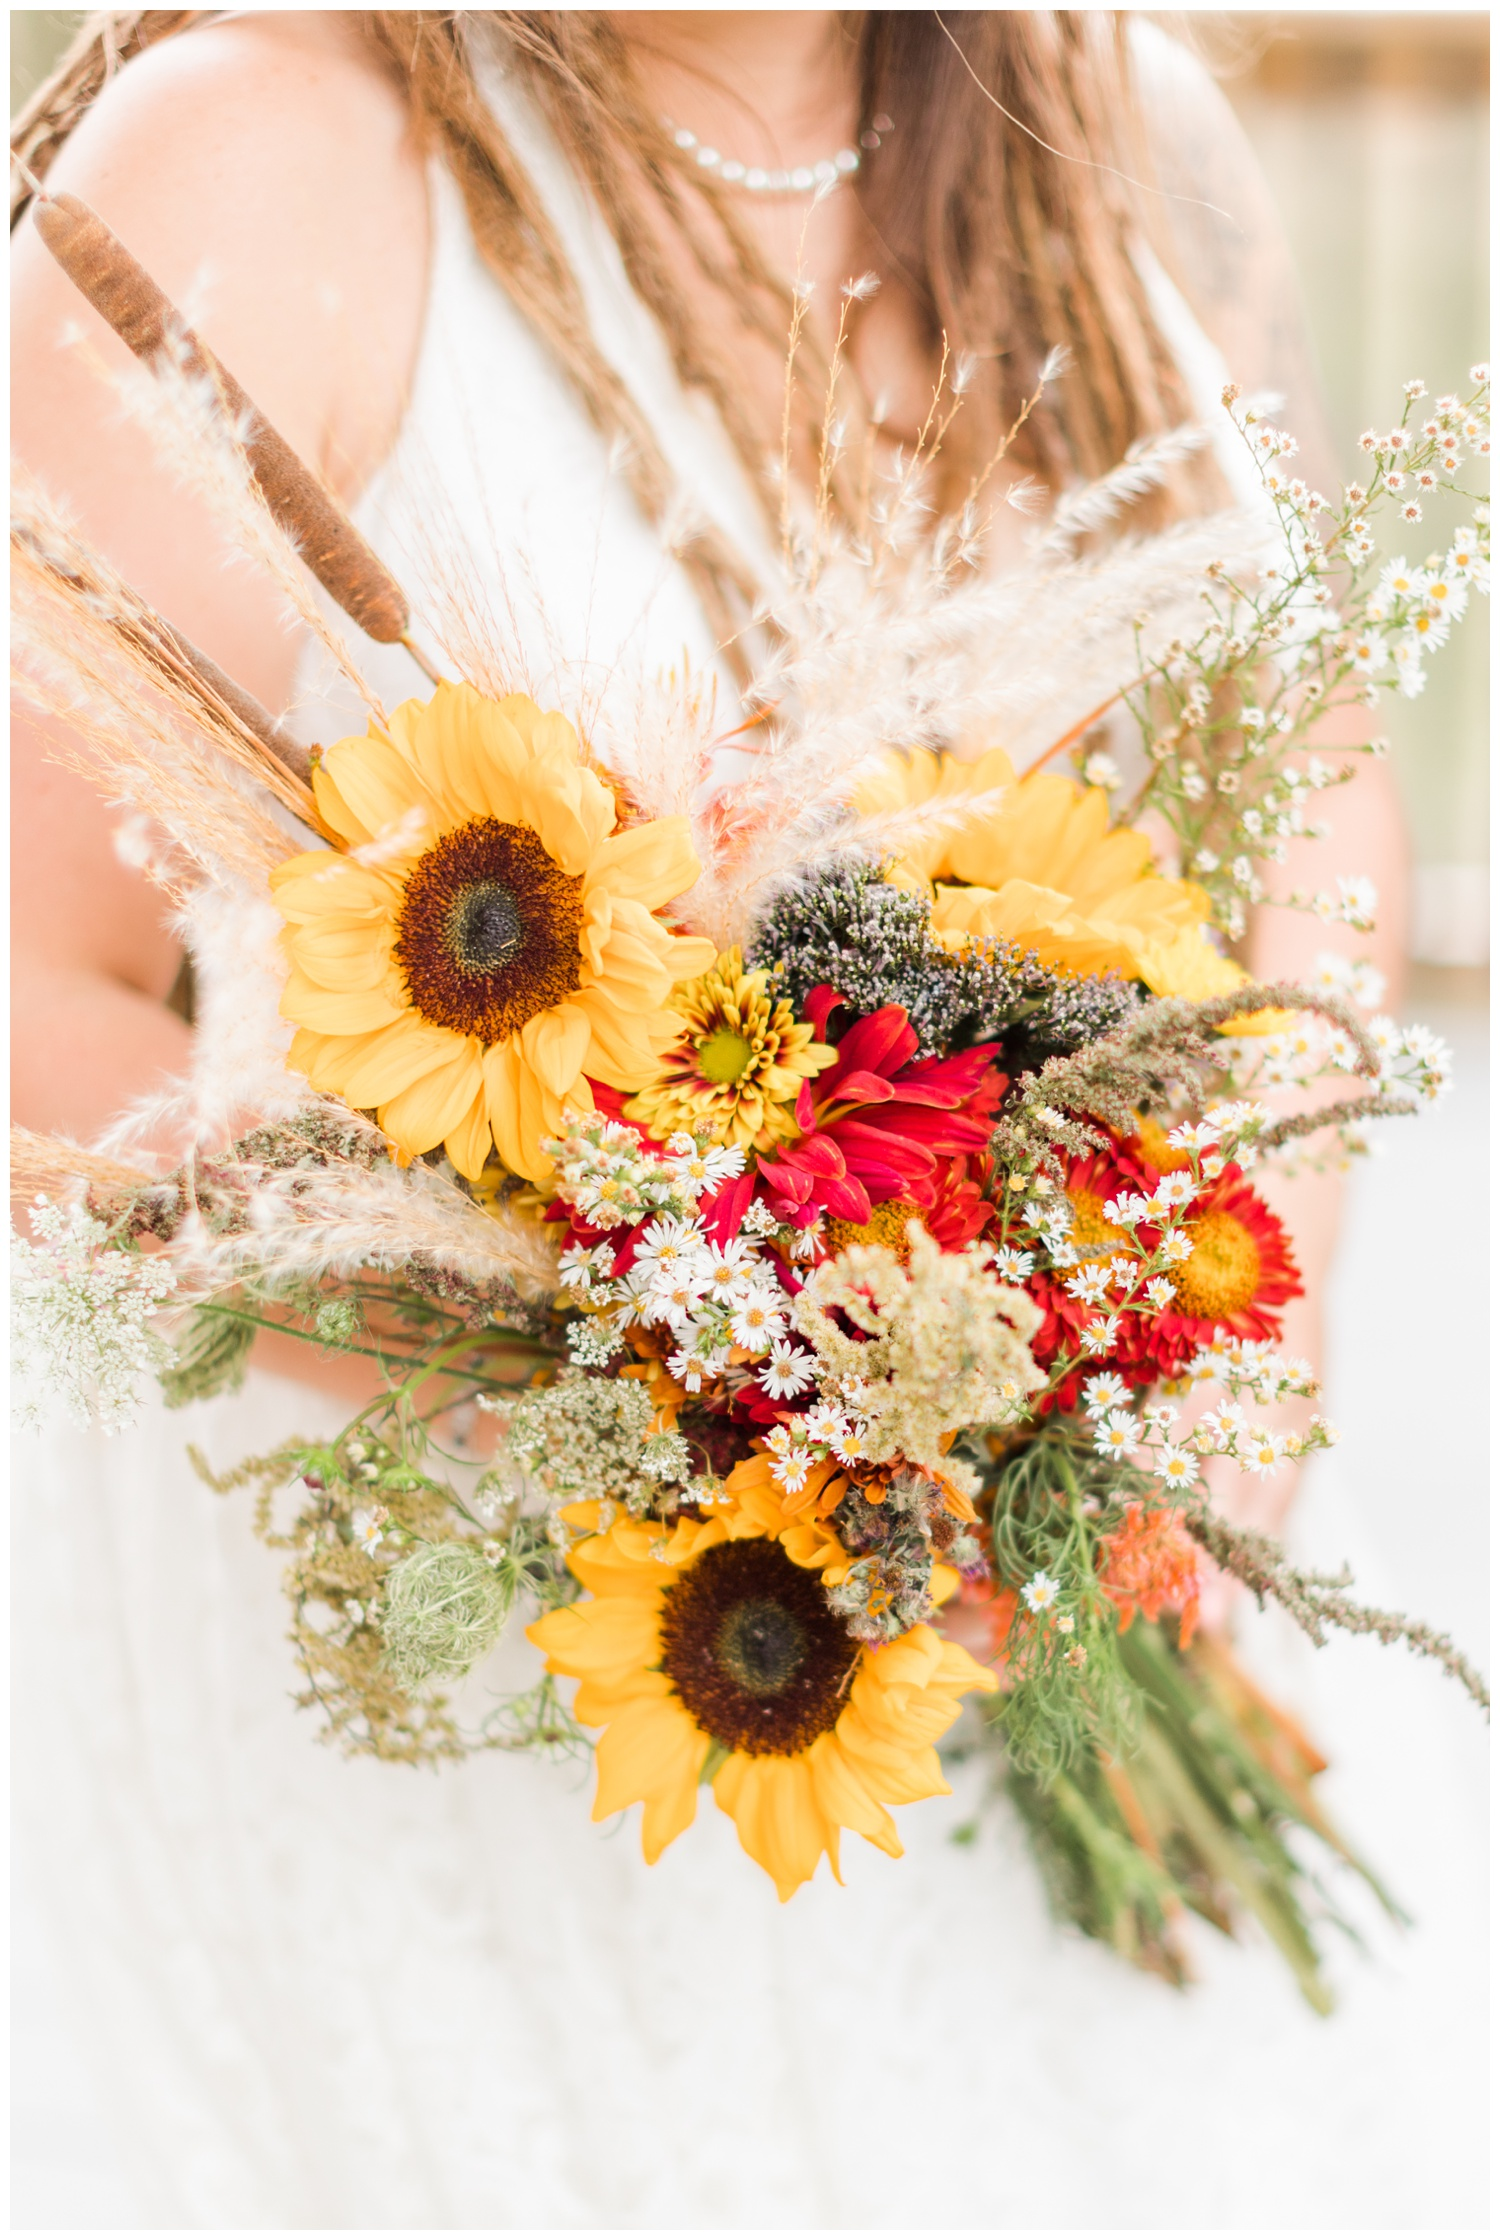 Fresh picked wildflower wedding bouquet featuring sunflowers, mums, cattail, Queen Anne's lace and pampas grass   CB Studio